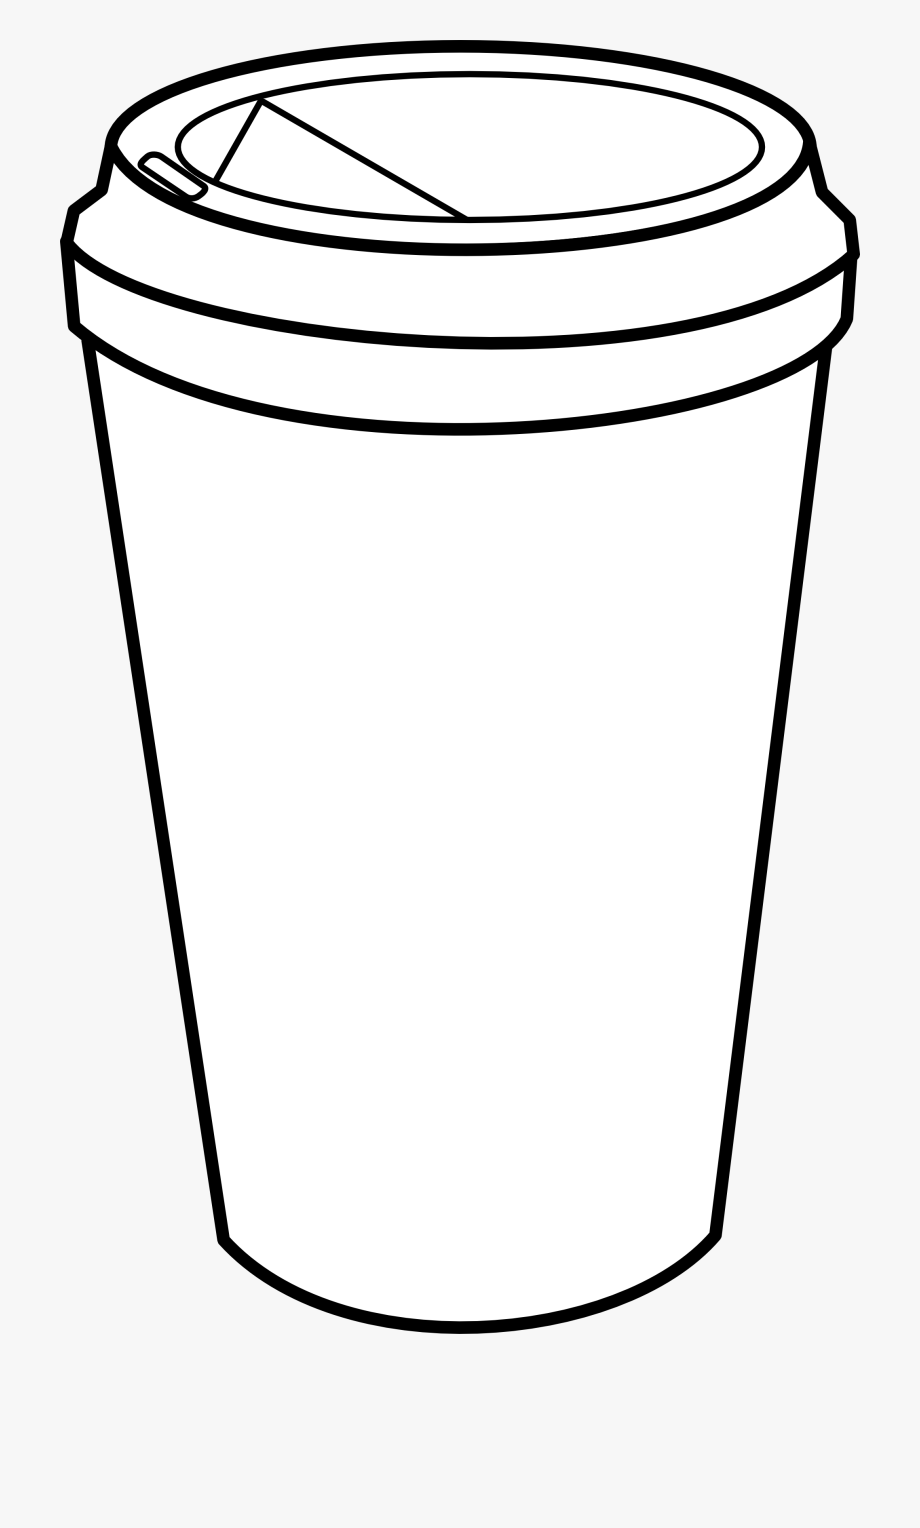 clip art transparent download Free library starbucks . Paper coffee cup clipart